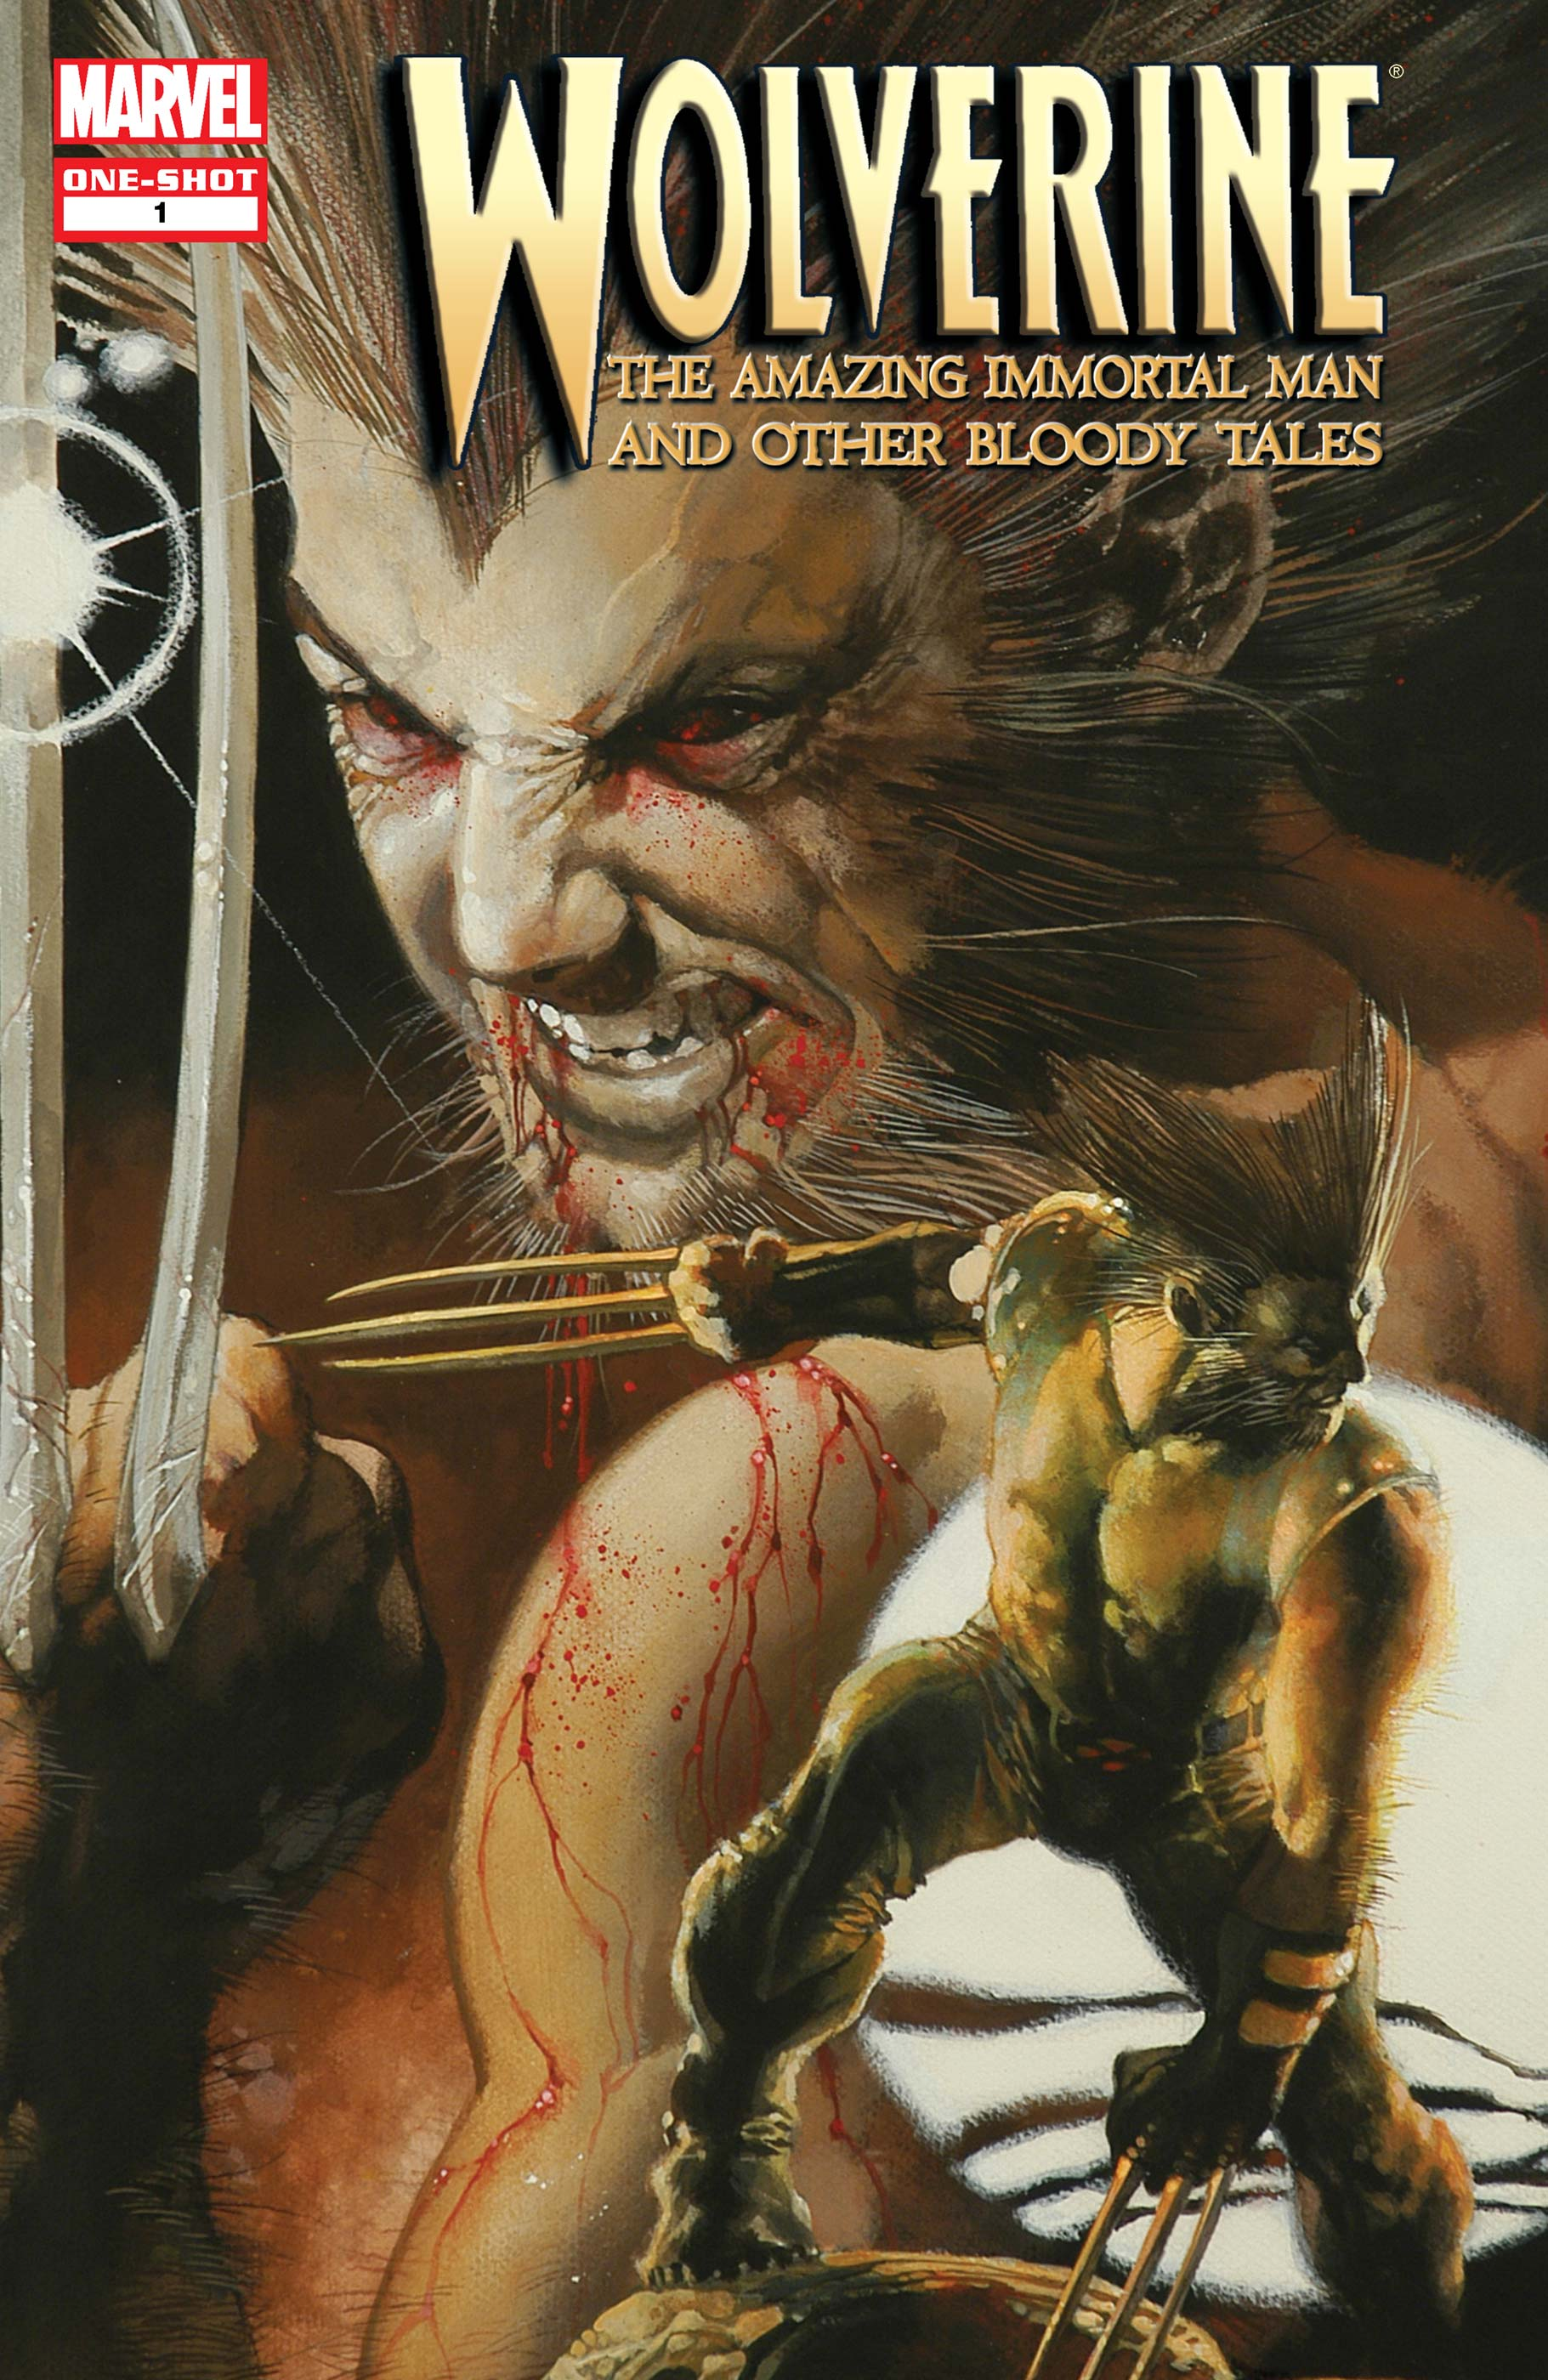 Wolverine: The Amazing Immortal Man & Other Bloody Tales (2008) #1